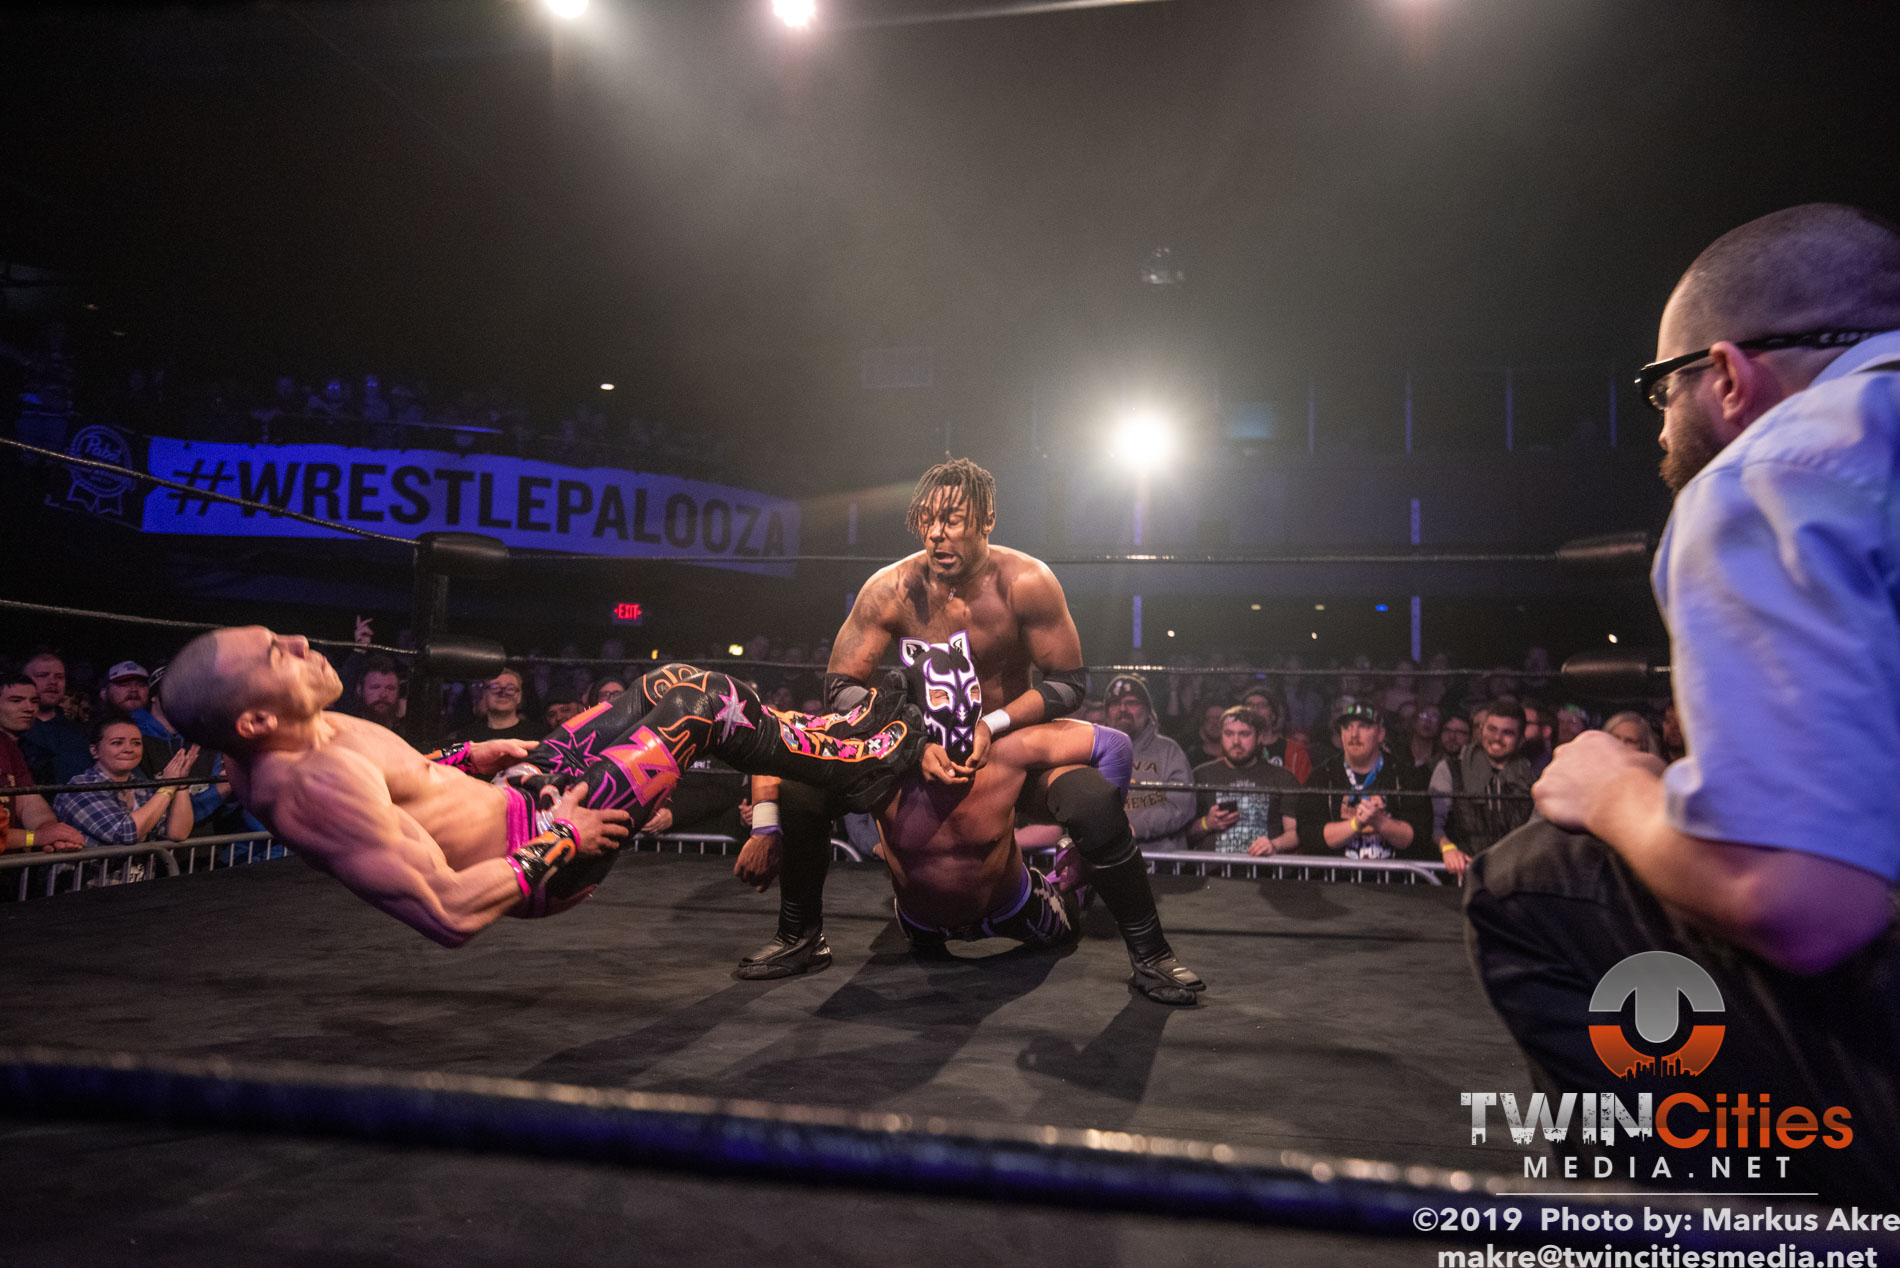 Wrestlepalooza - Match 6-7